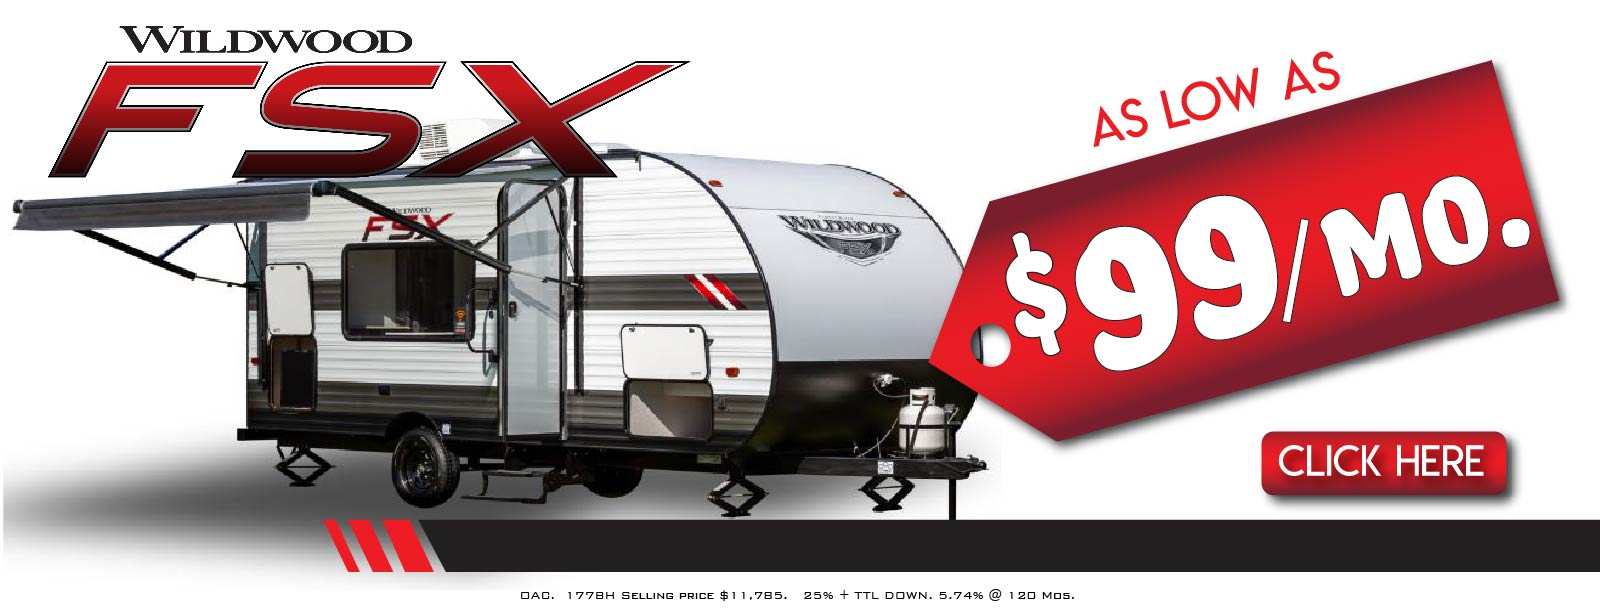 2020 Wildwood FSX 177BH as low as $99 per month